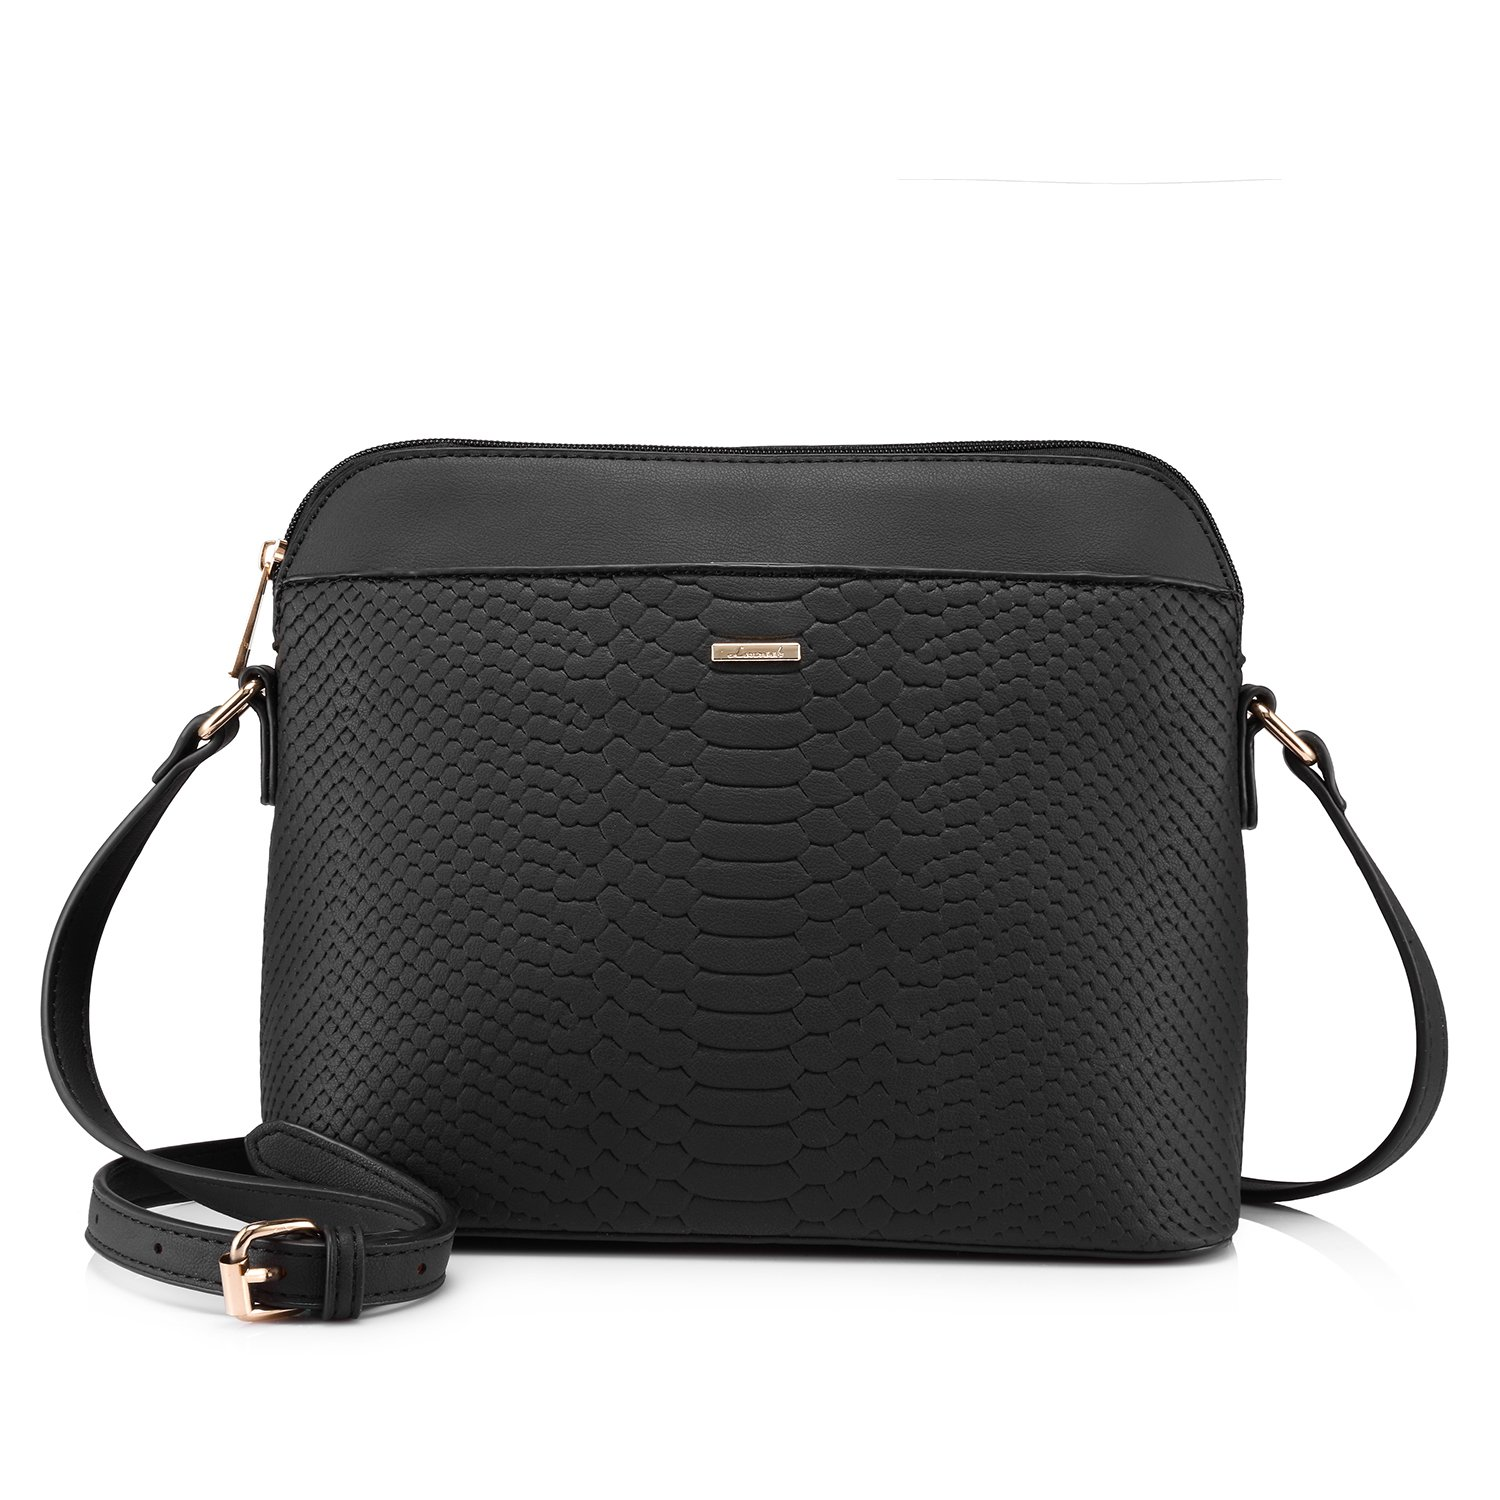 Stylish Crossbody Bags Purses Shoulder Bag for Women in Contrast Design (Black)